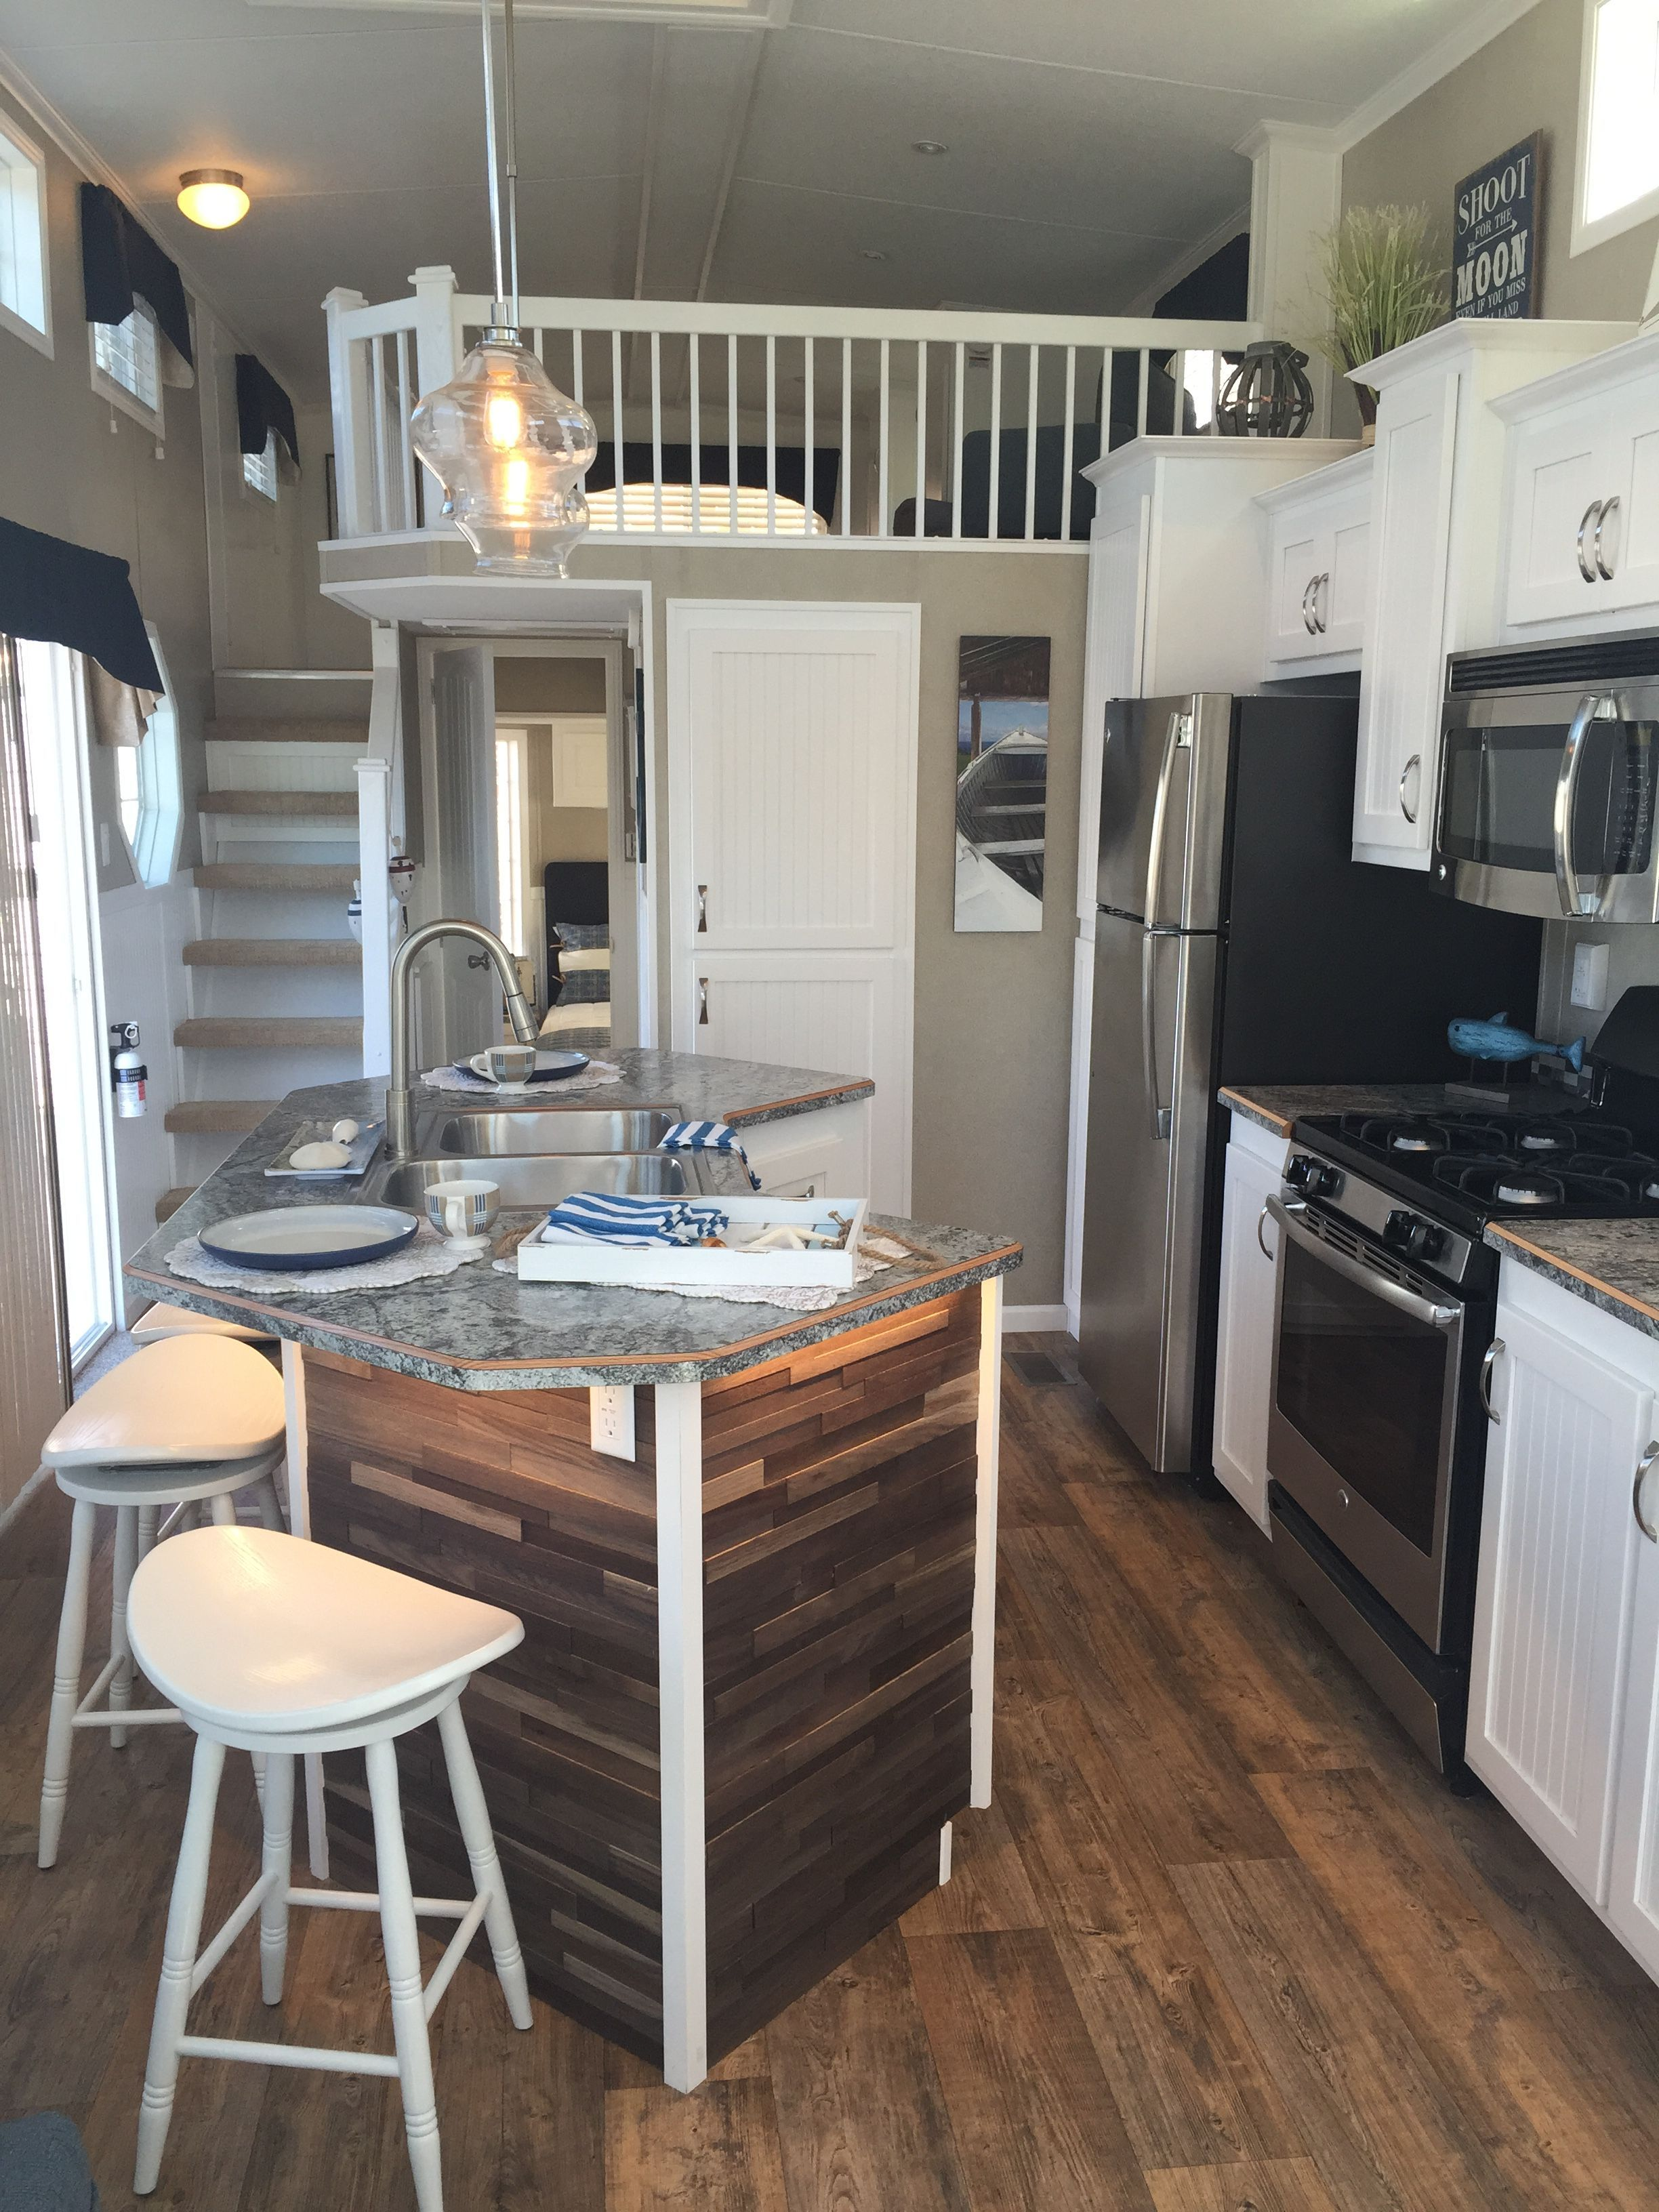 Kropf Island Cottage Park Model #tinyhousekitchens  Tiny House Brilliant Compact Kitchen Designs For Very Small Spaces Design Decoration